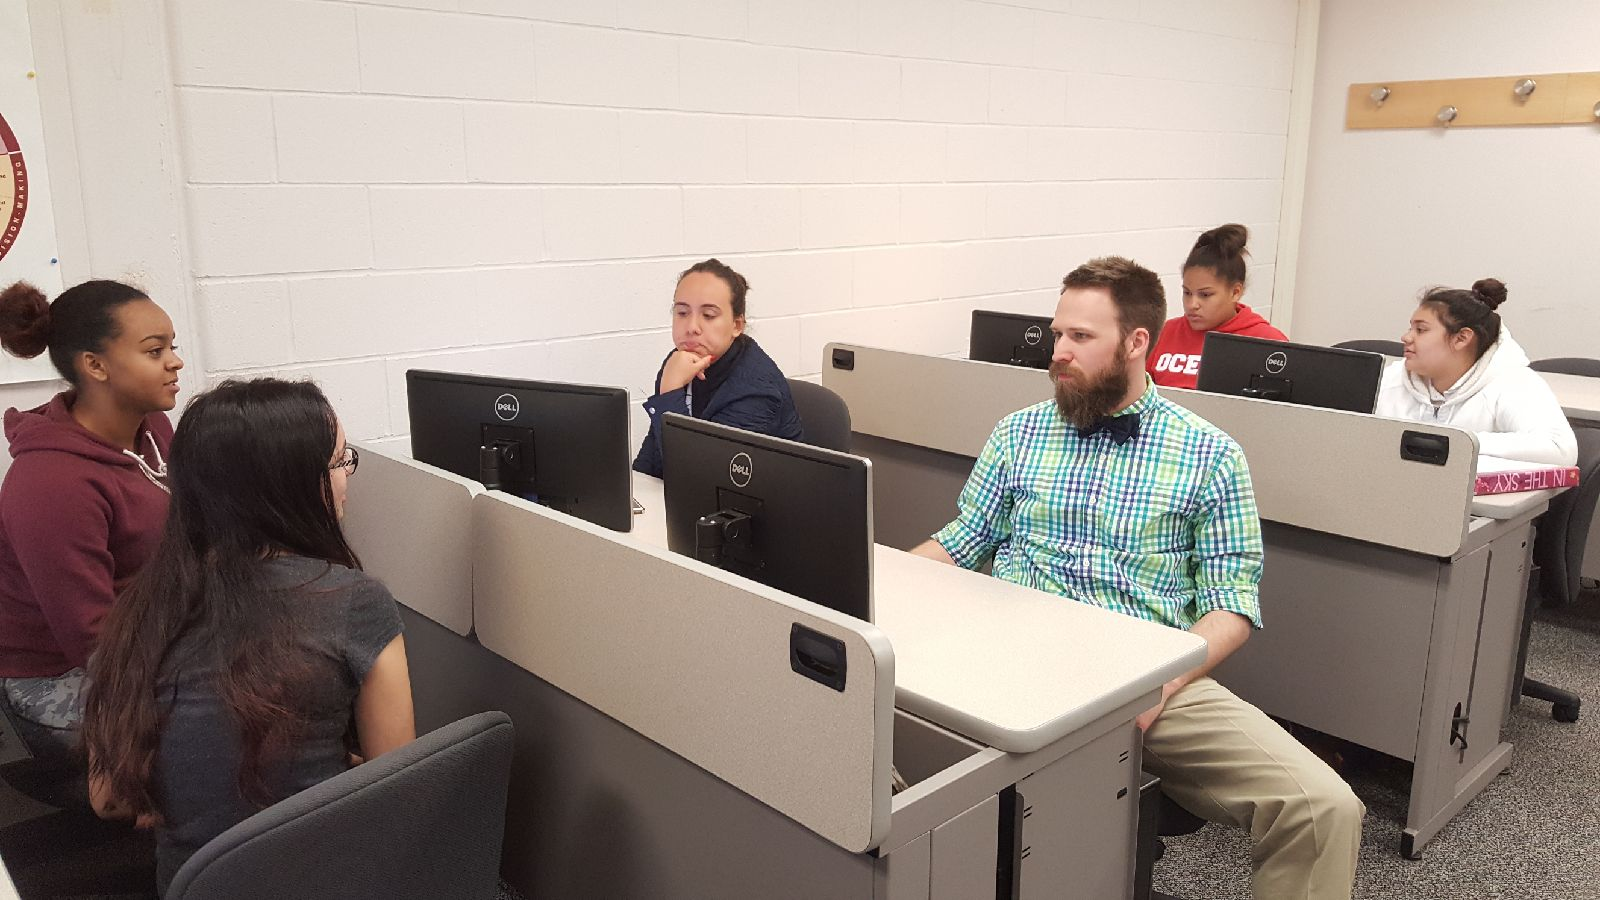 Copy of Instructor helping code